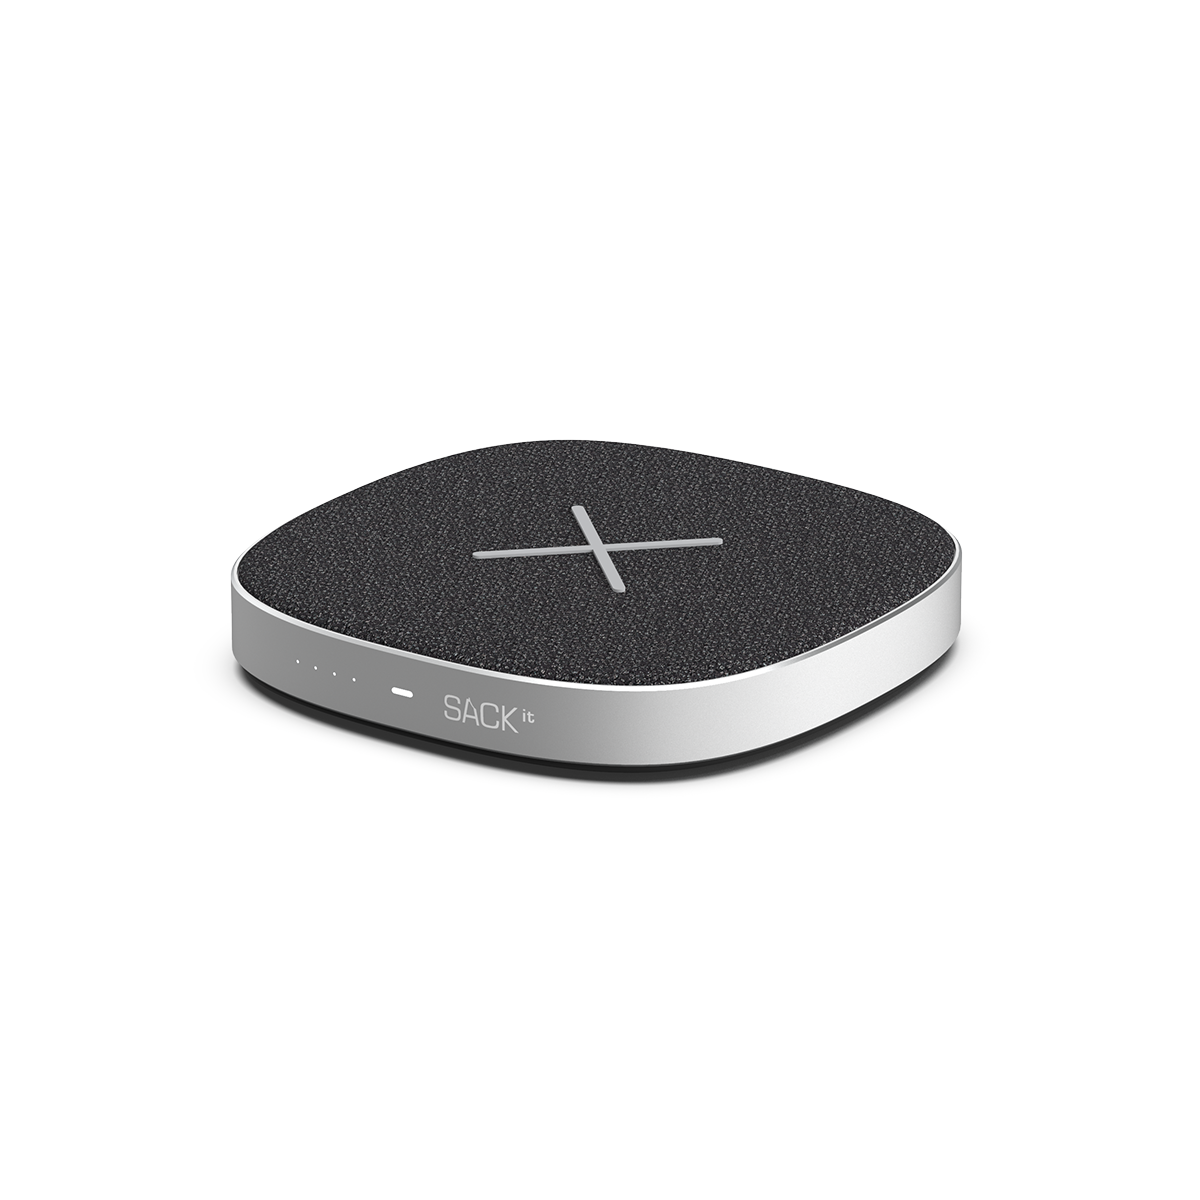 SACKit - CHARGEit Care power bank & wireless charger Black